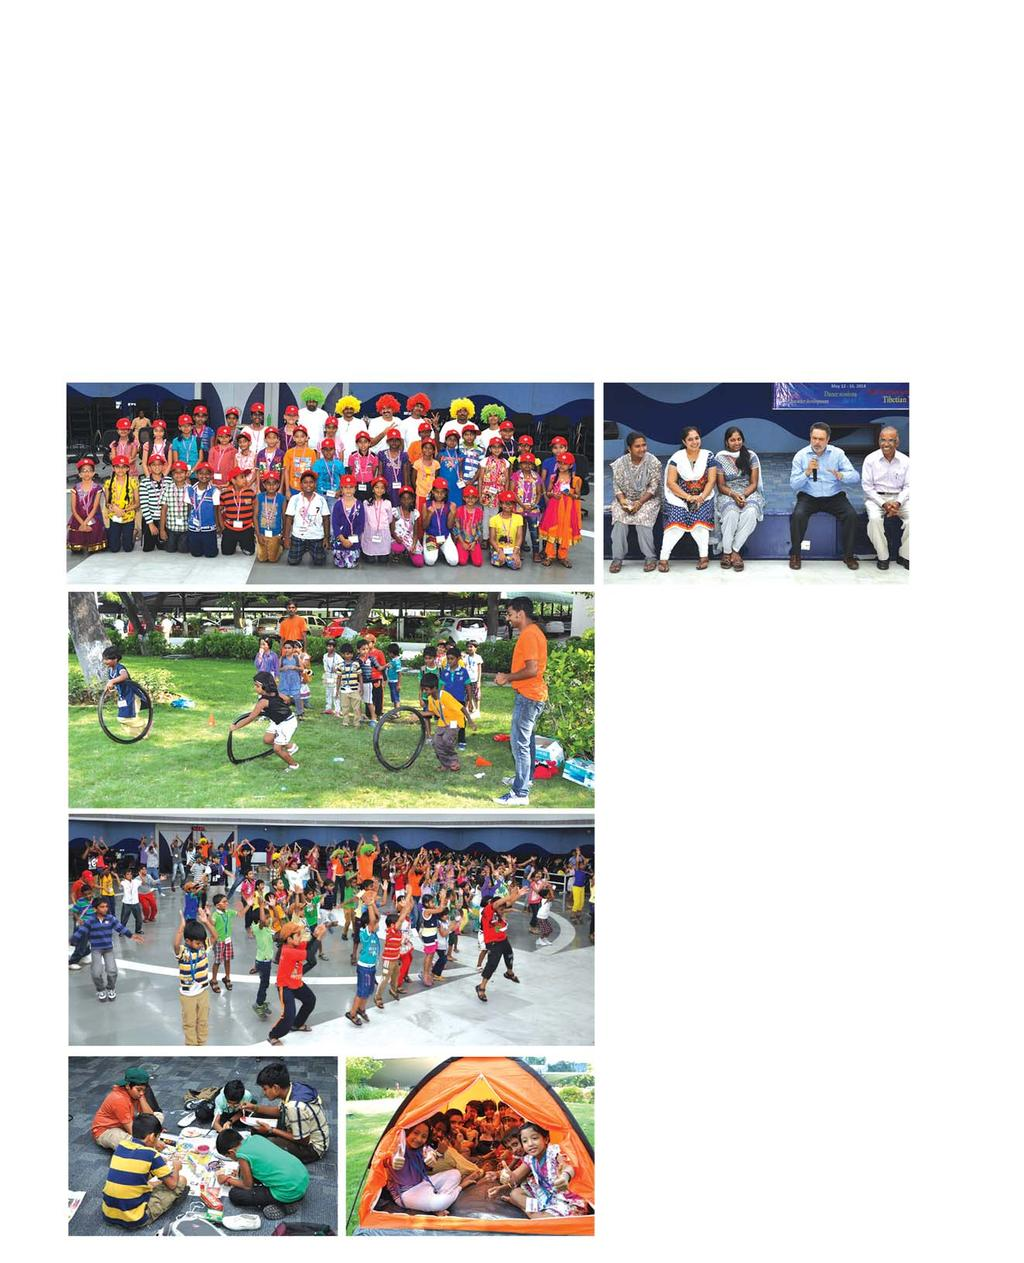 Children s Summer Camp 2014 Summer holidays are a welcome break for children to let their hair down. For parents, it s an arduous task to keep the children occupied during such long holidays.